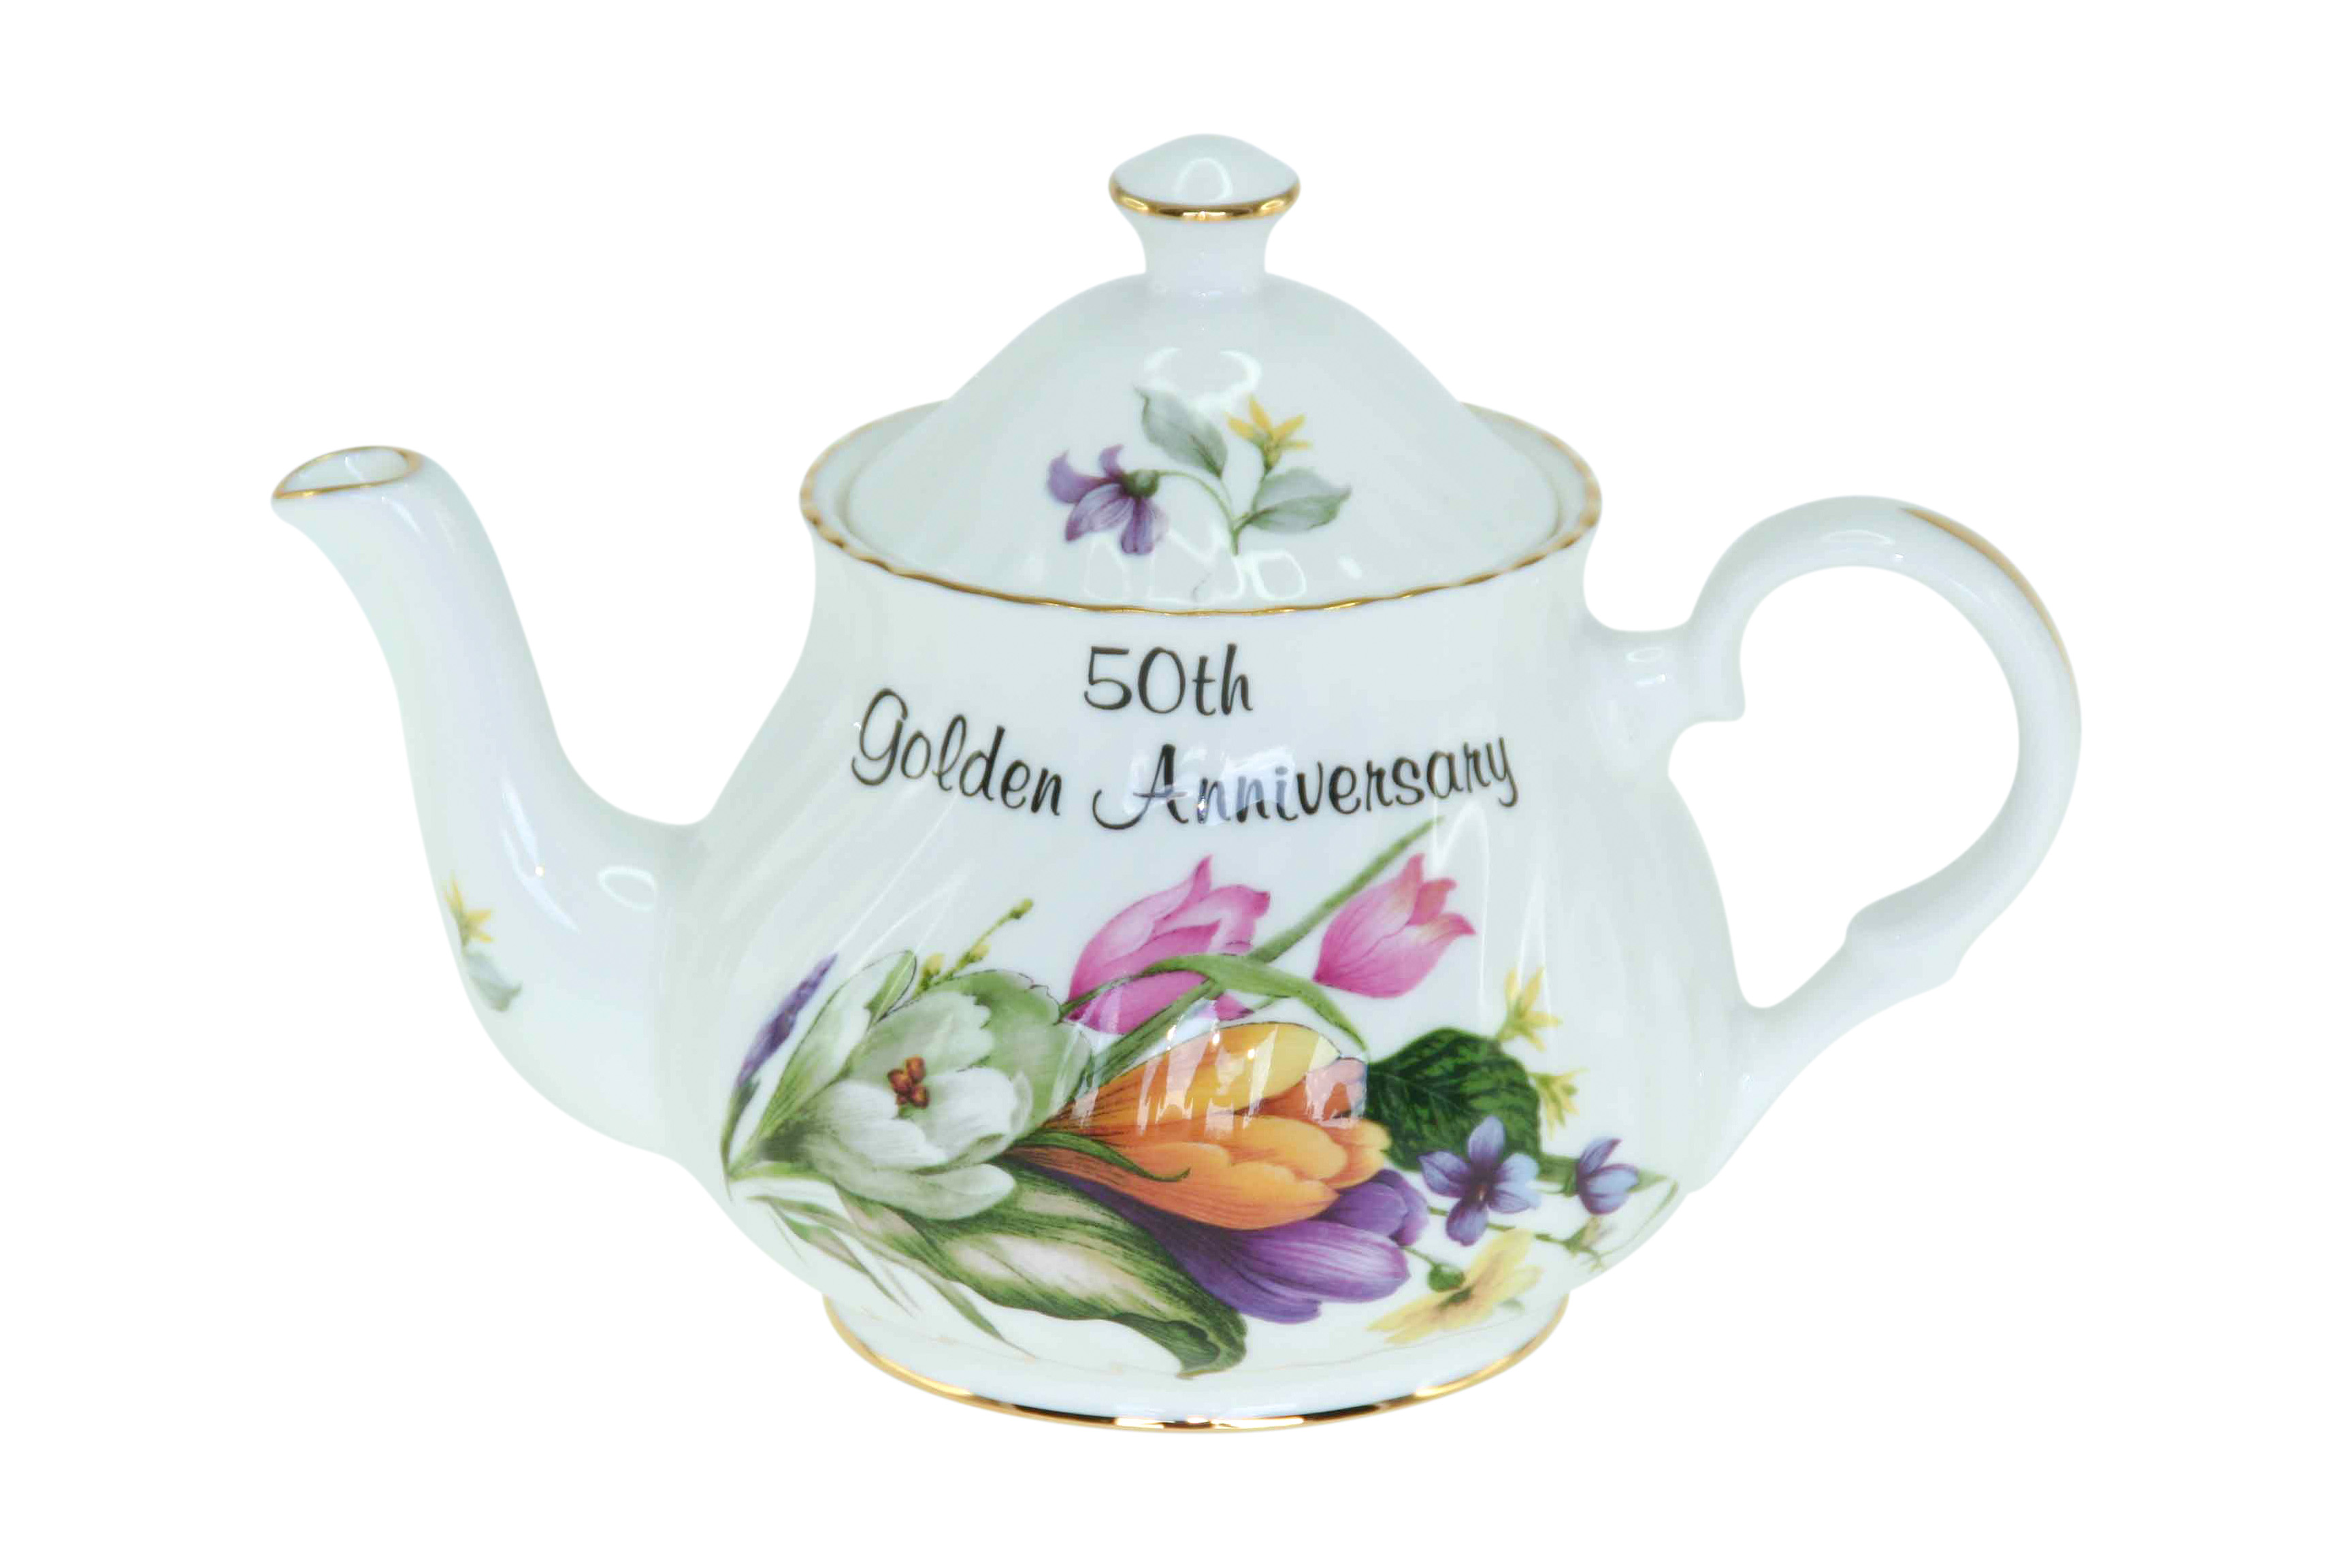 50th Golden Anniversary 2cup Teapot